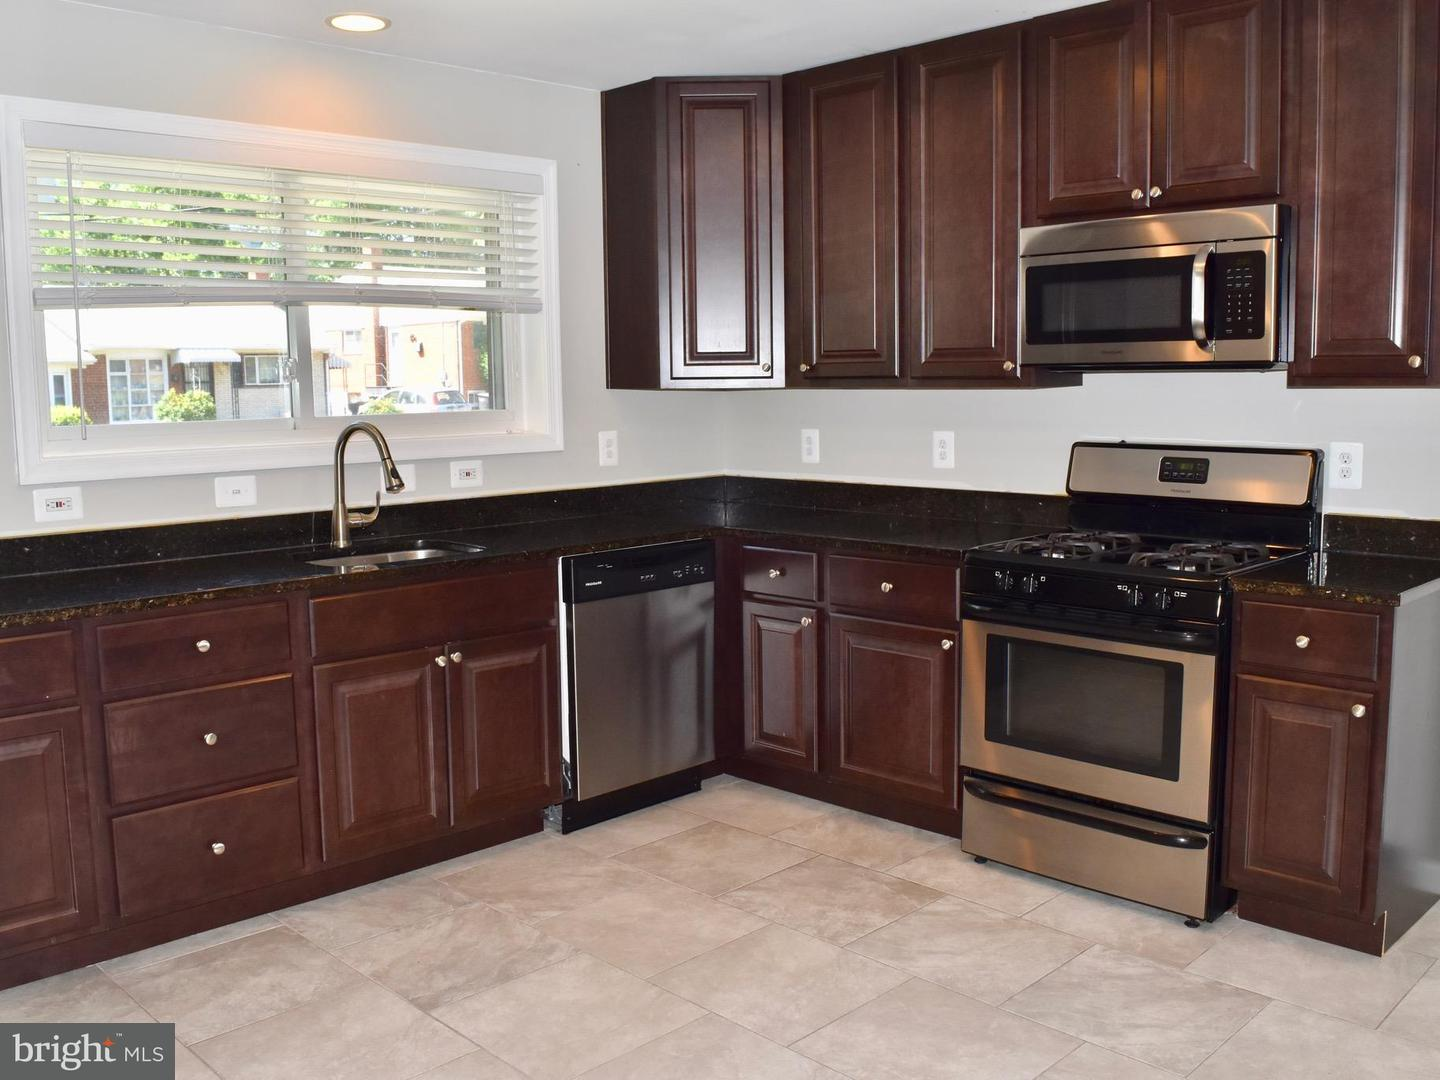 Other Residential for Rent at 108 Jordan St Alexandria, Virginia 22304 United States